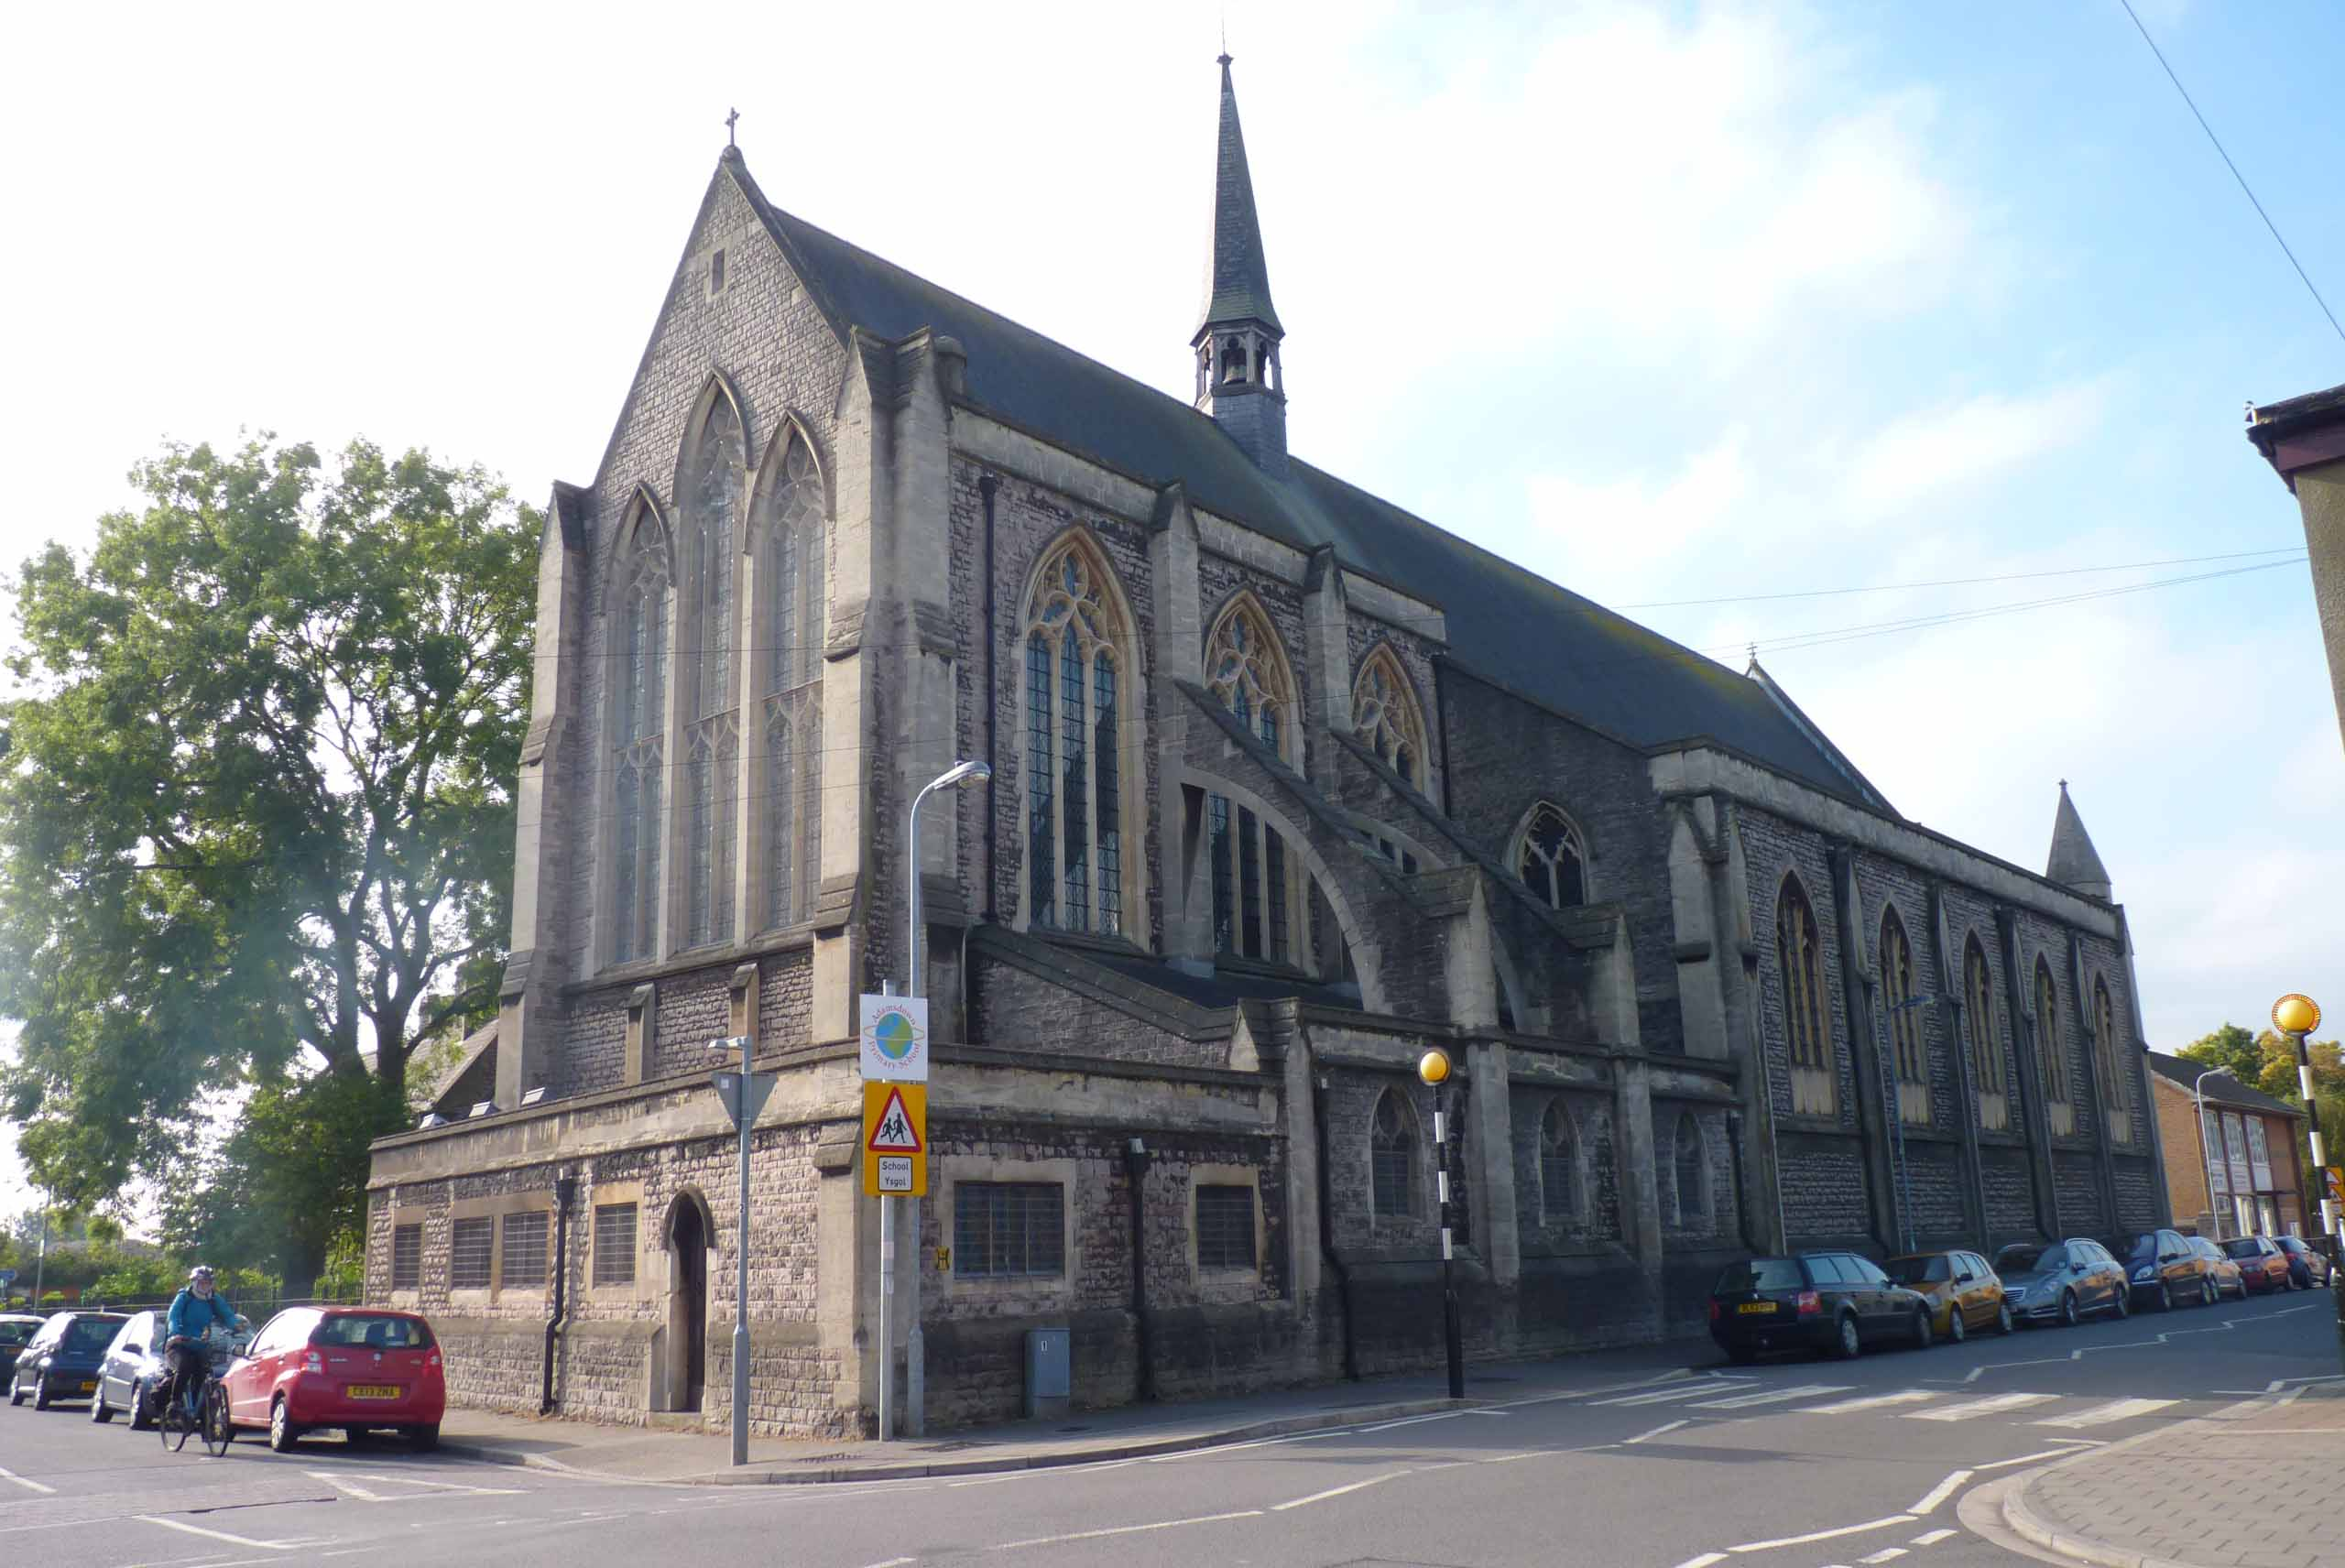 St German, Cardiff, Wales